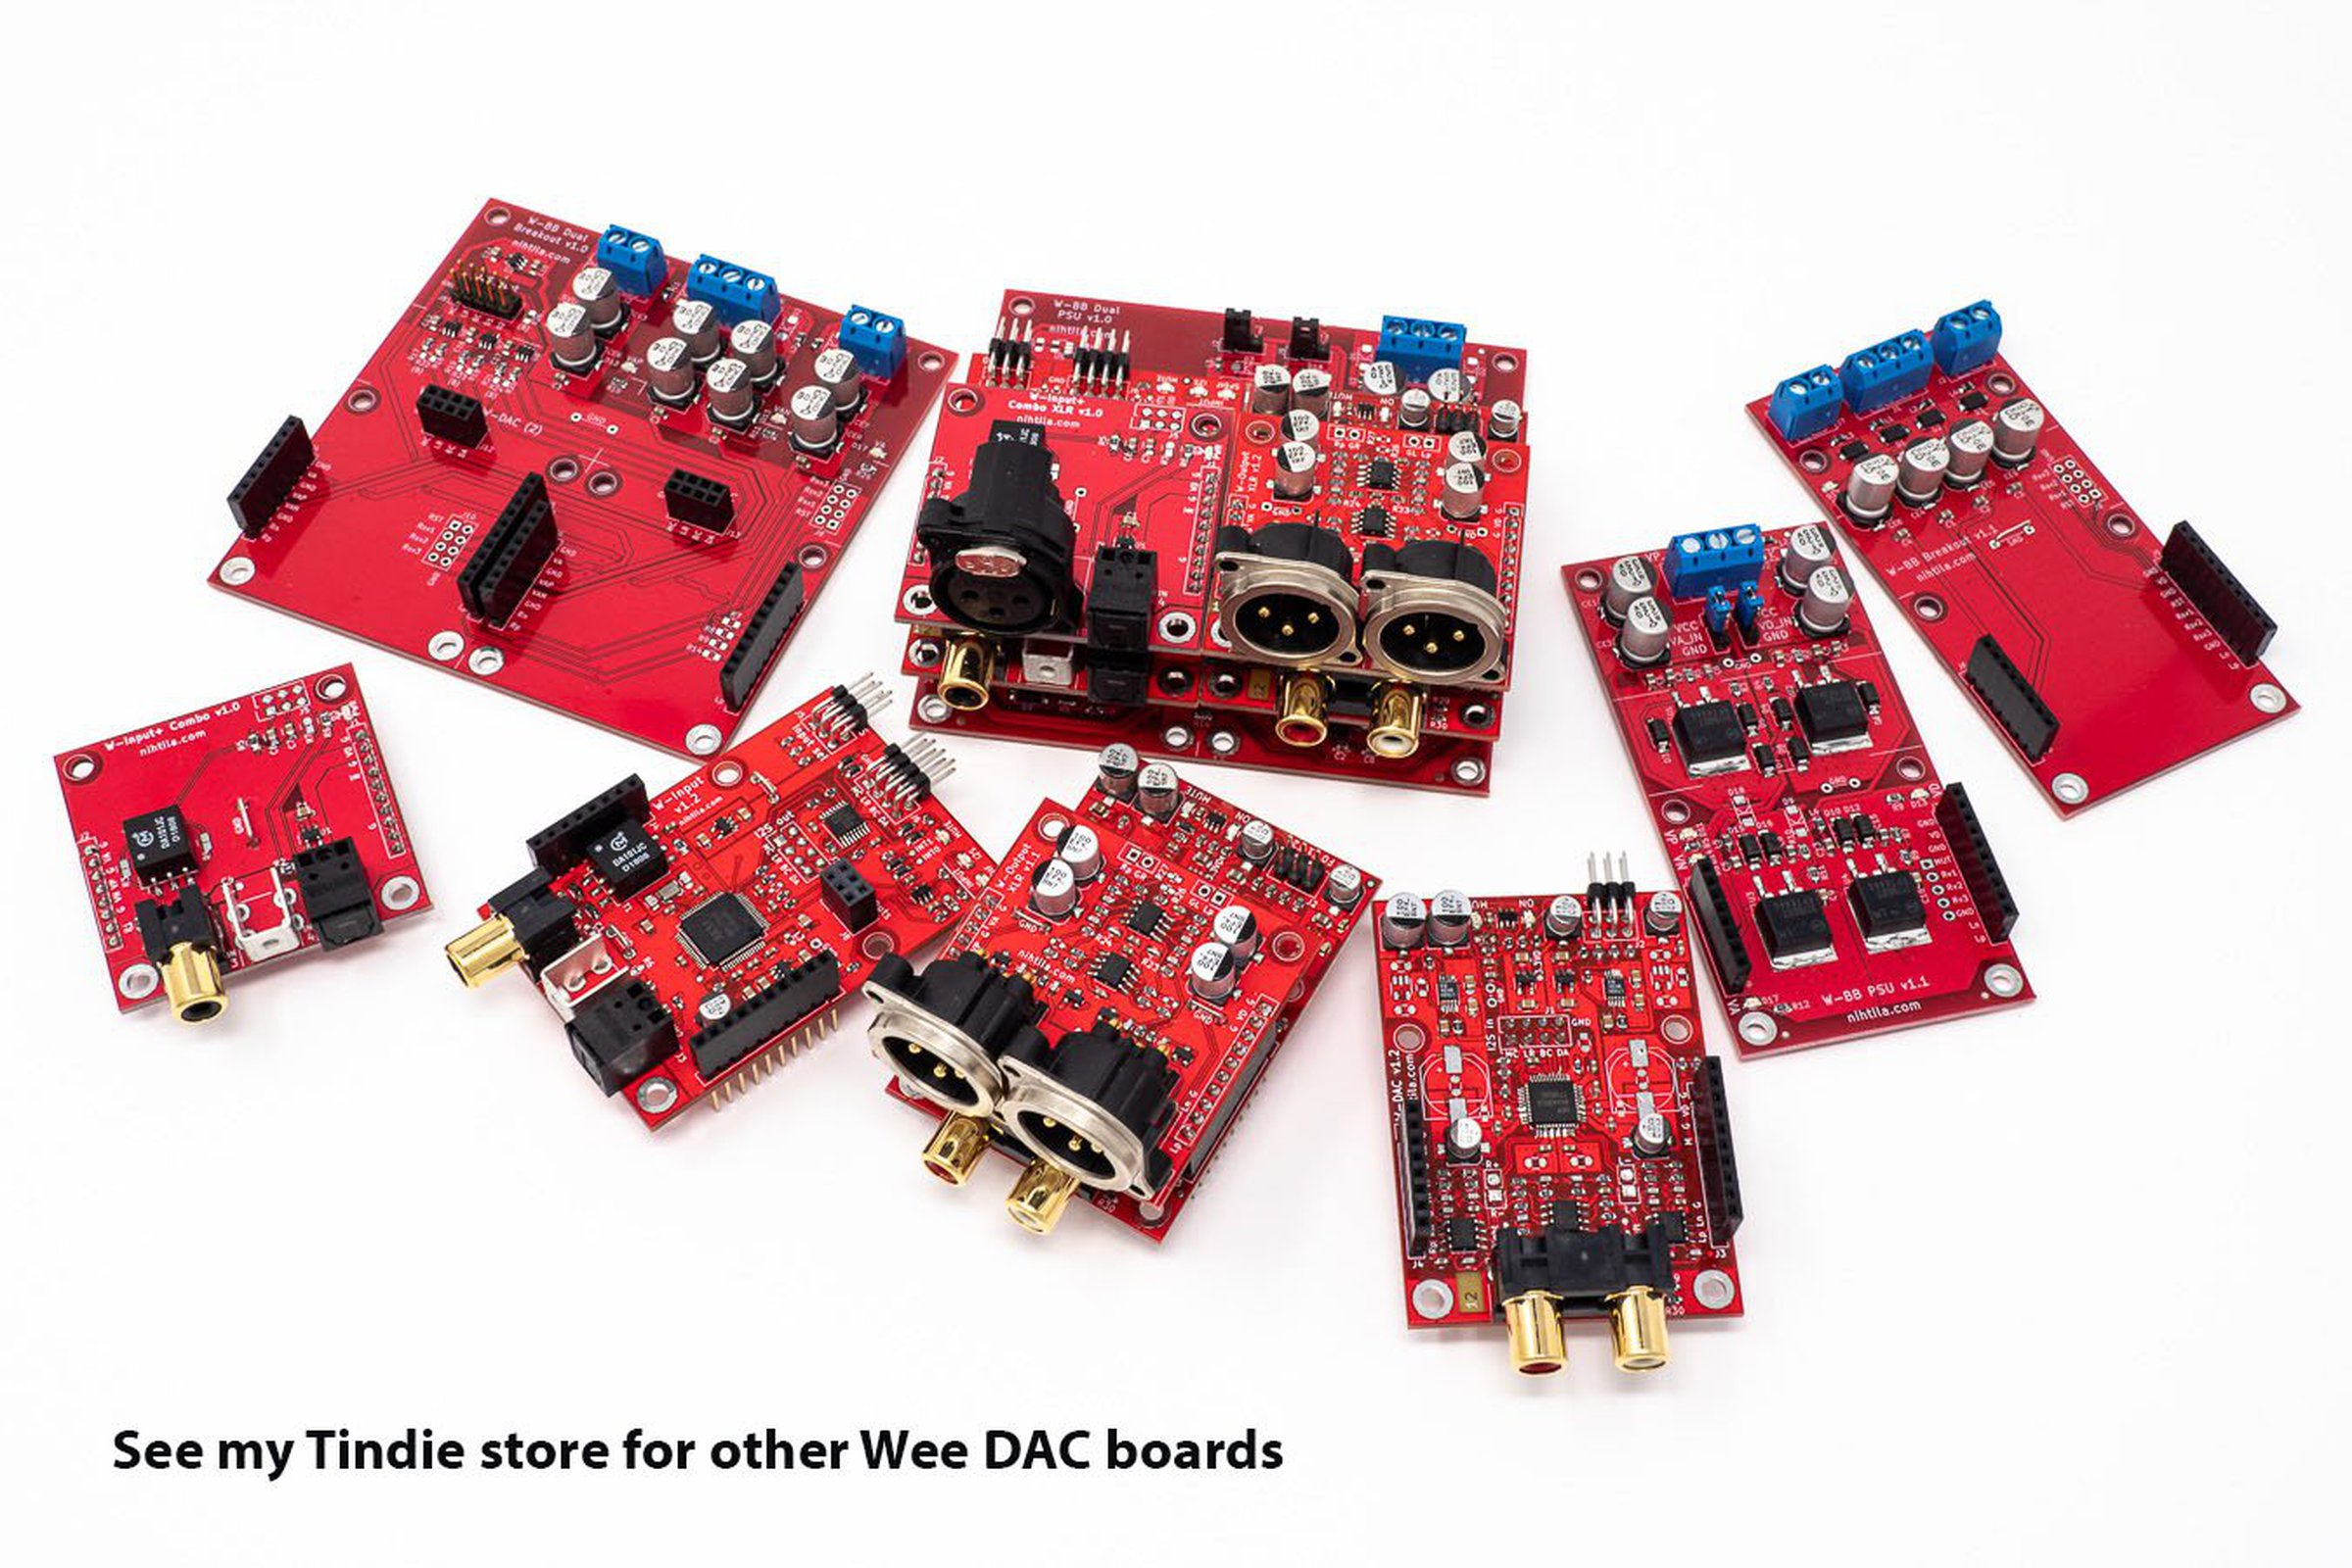 Wee DAC boards